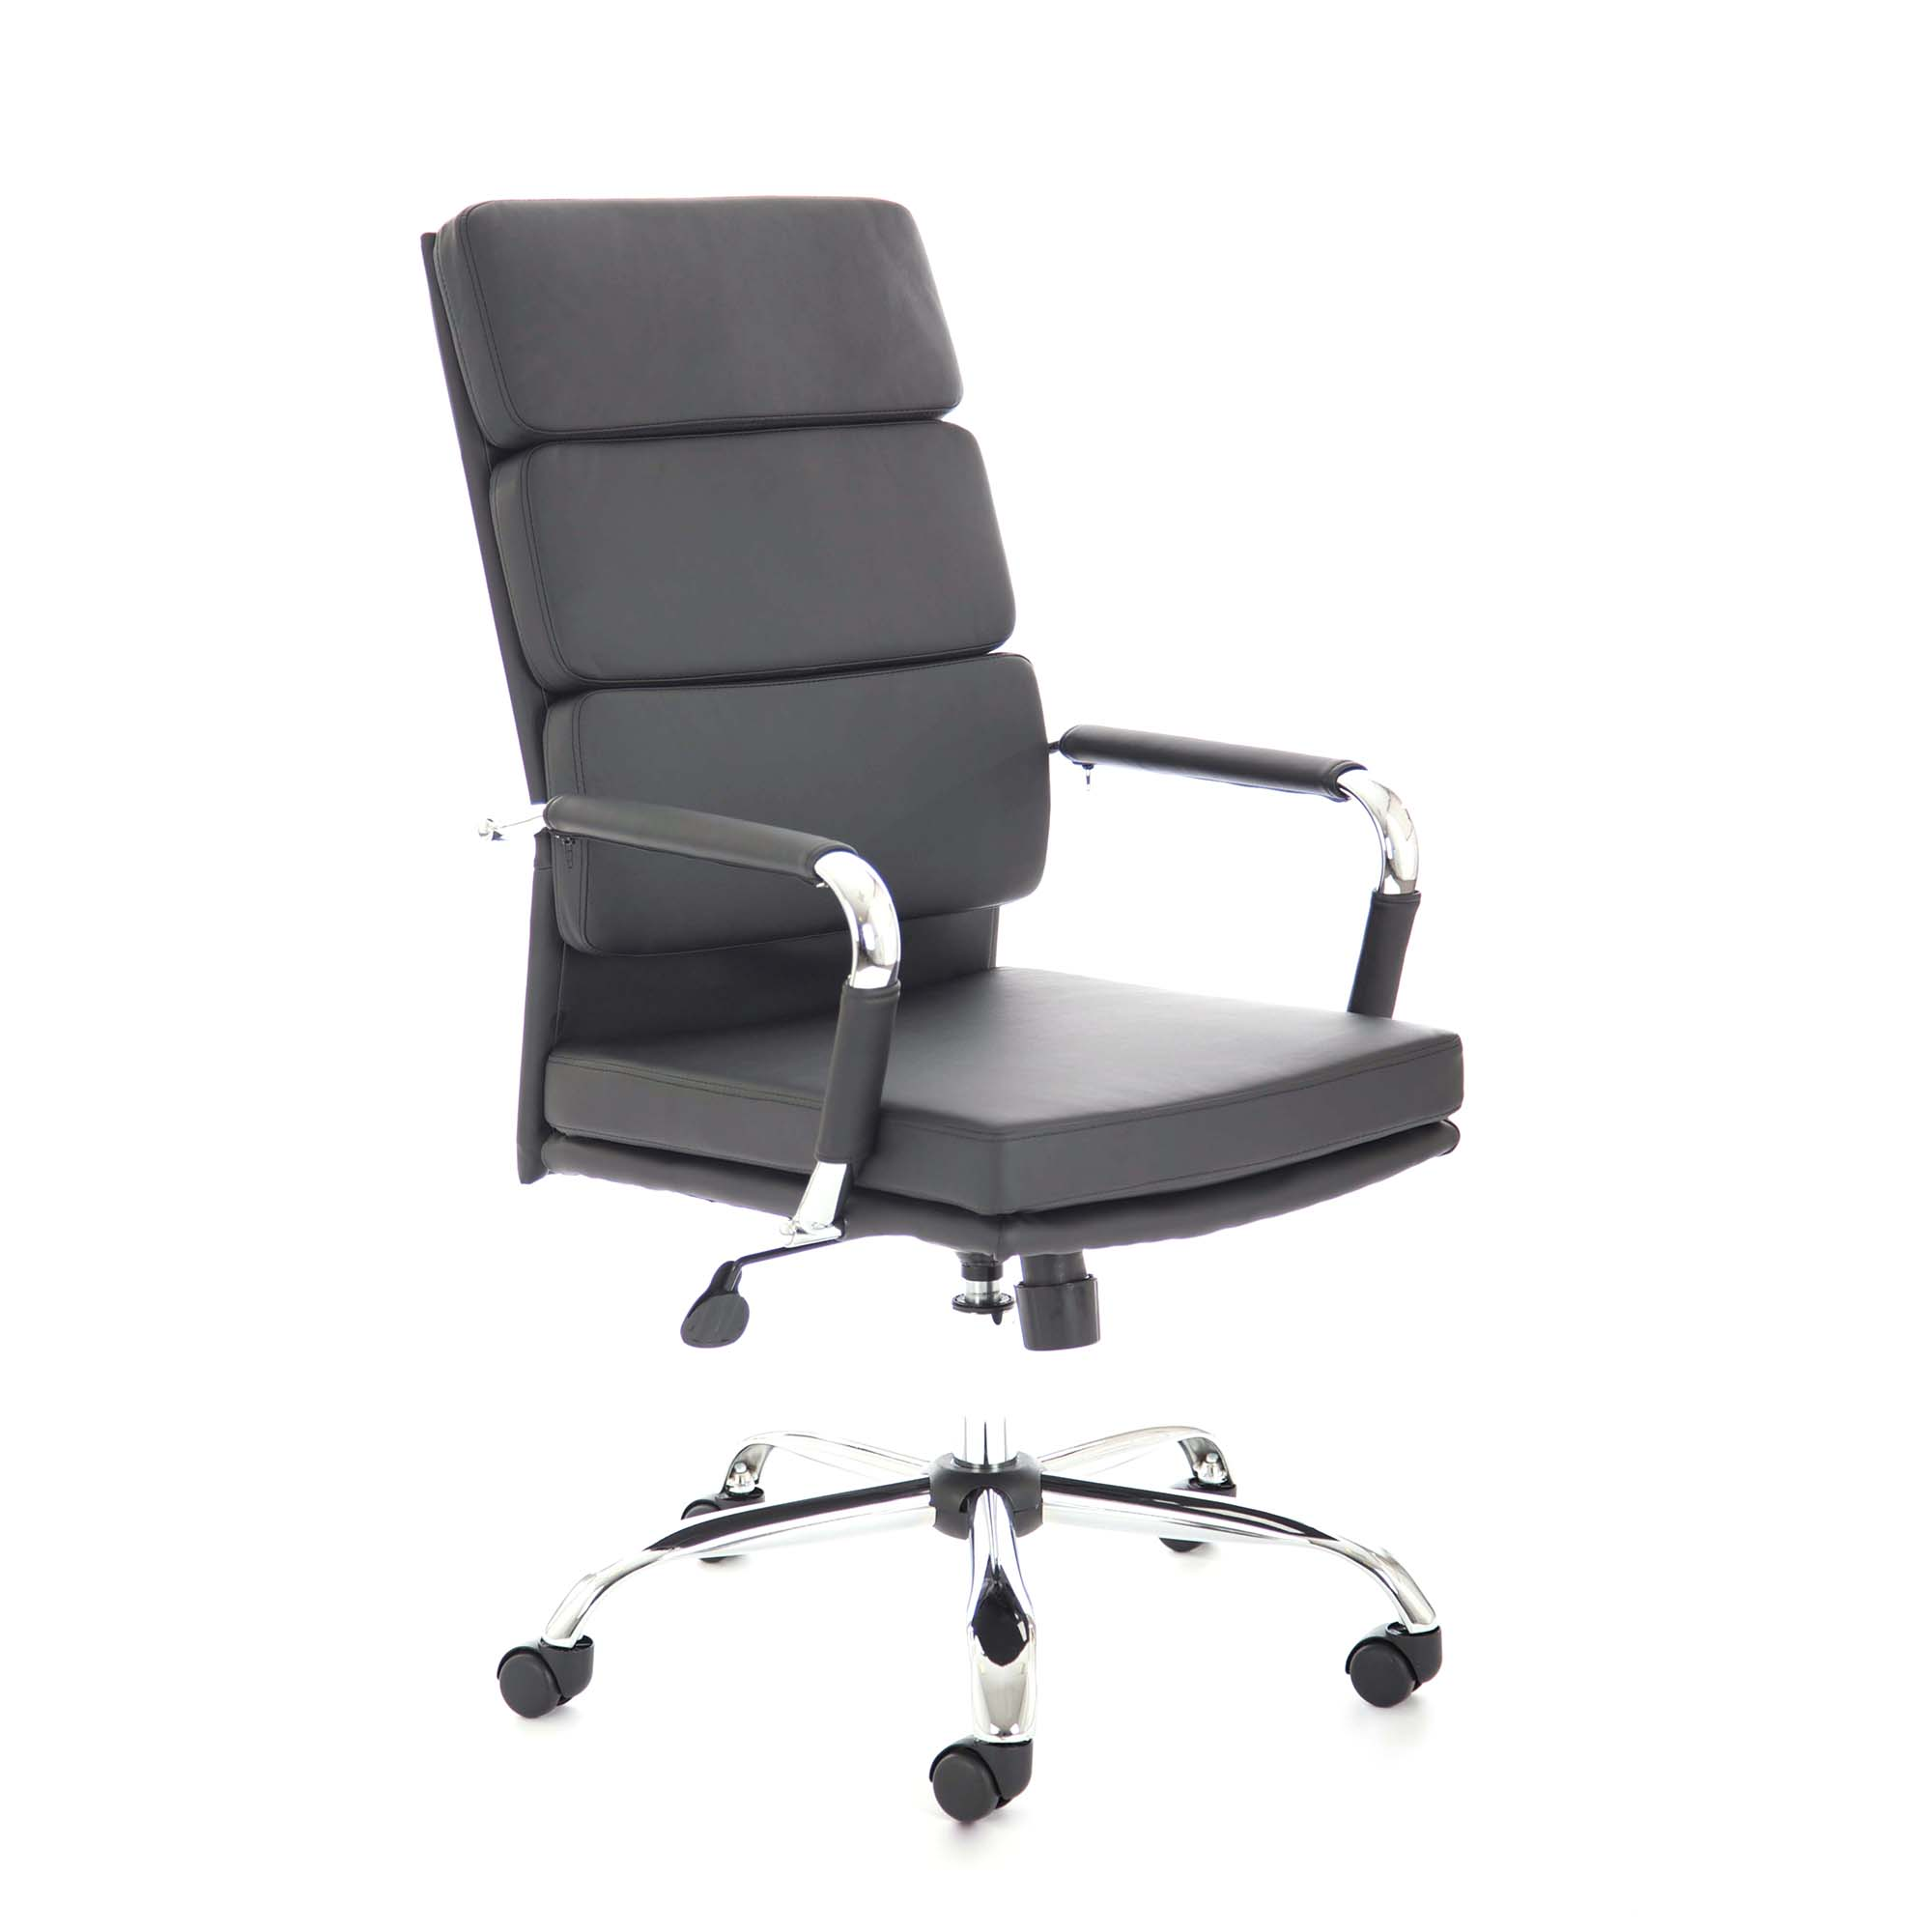 Adroit Advocate Executive Chair With Arms Bonded Leather Black Ref BR000204